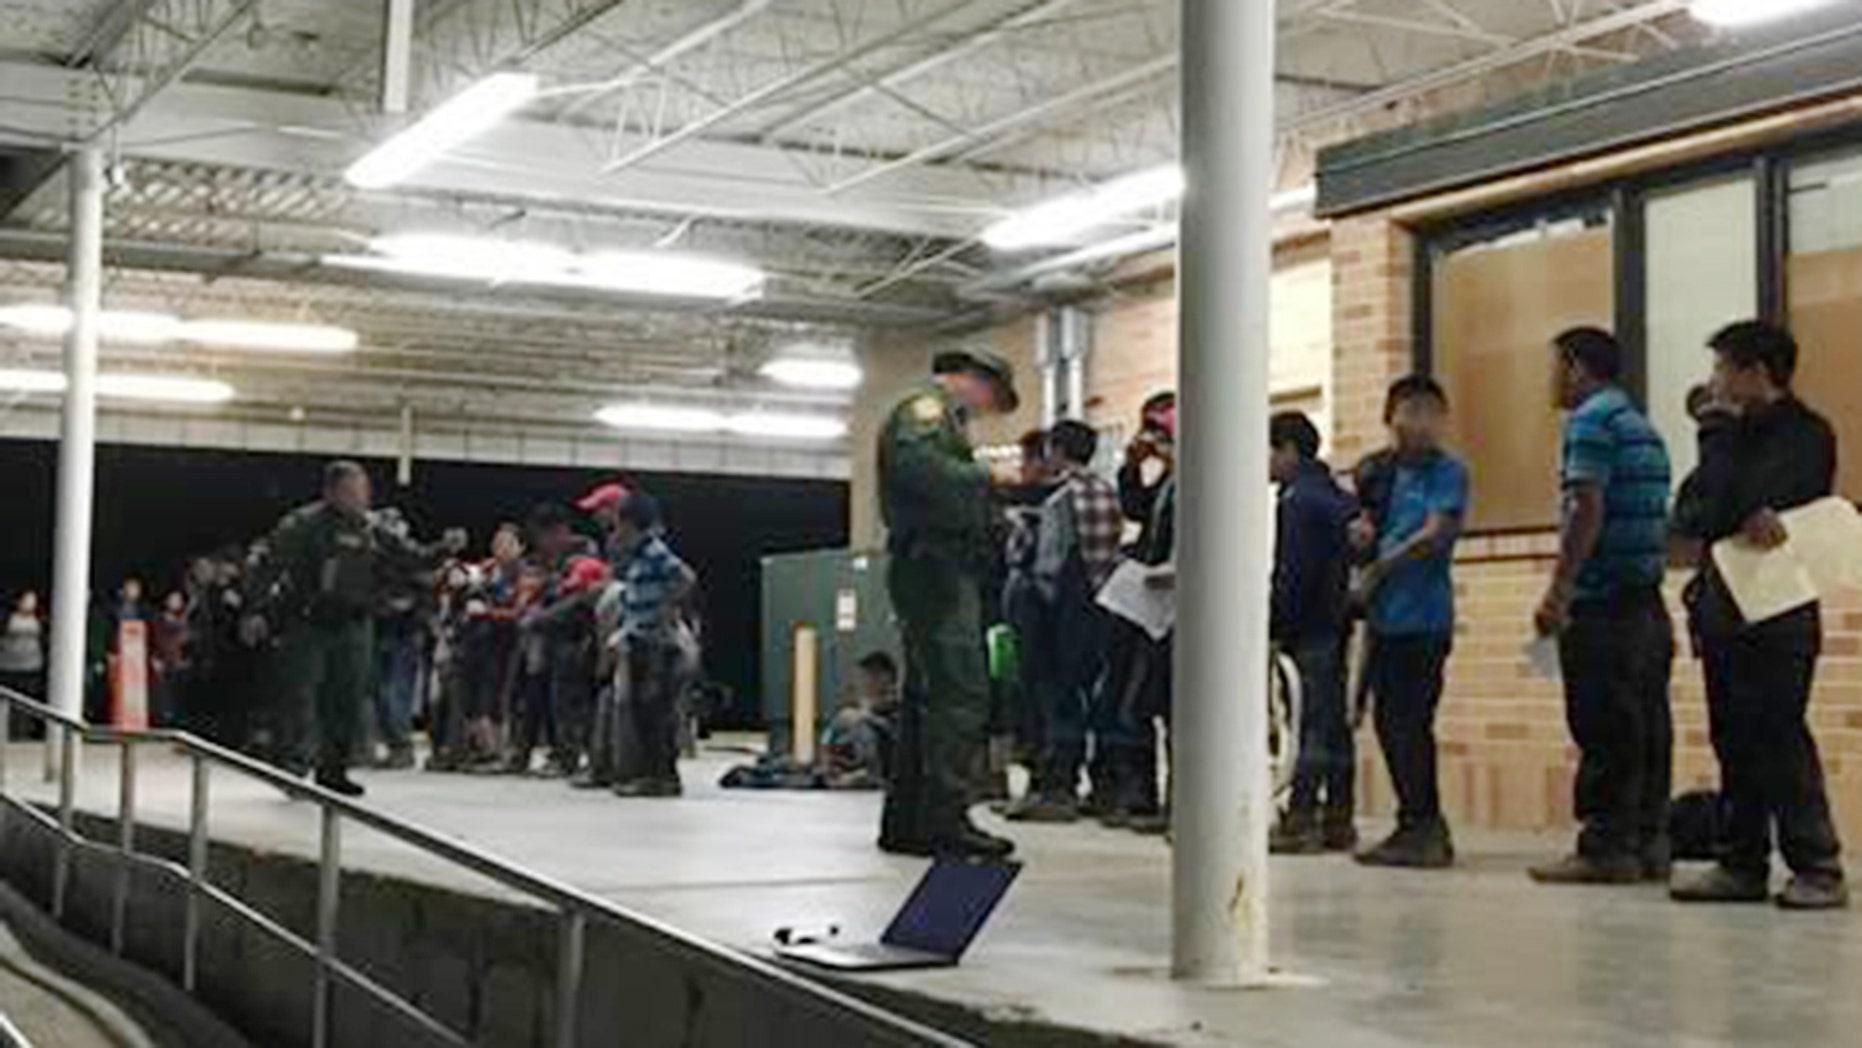 Border Patrol agents assigned to the Weslaco station apprehended two groups, consisting of 131 illegal immigrants, in little more than a day.